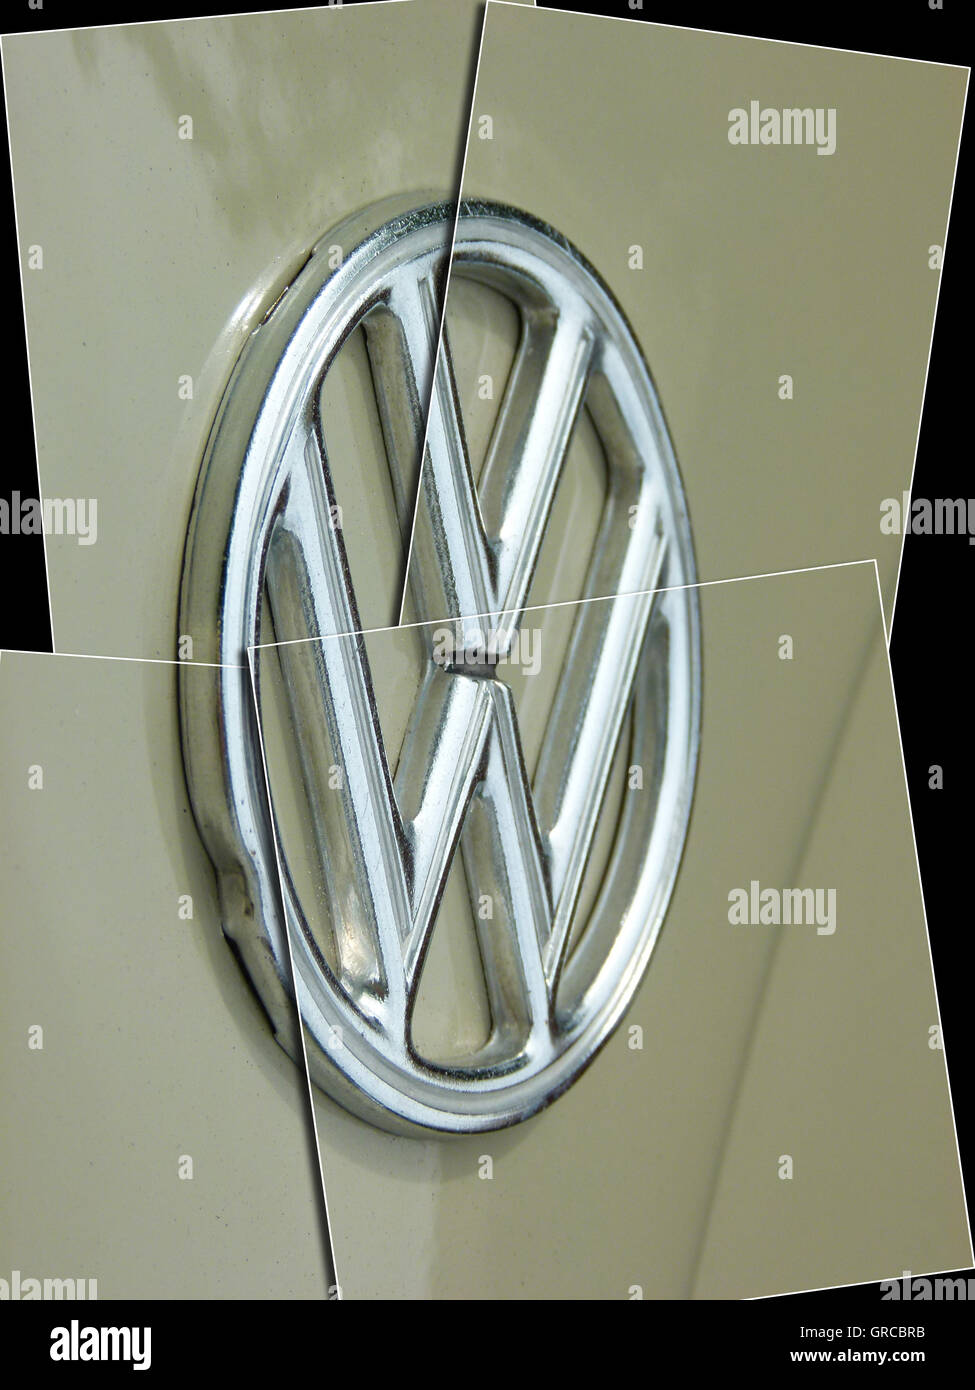 Vw Logo, Vw Affair, Crisis And Change For New Constitution, Symbol - Stock Image